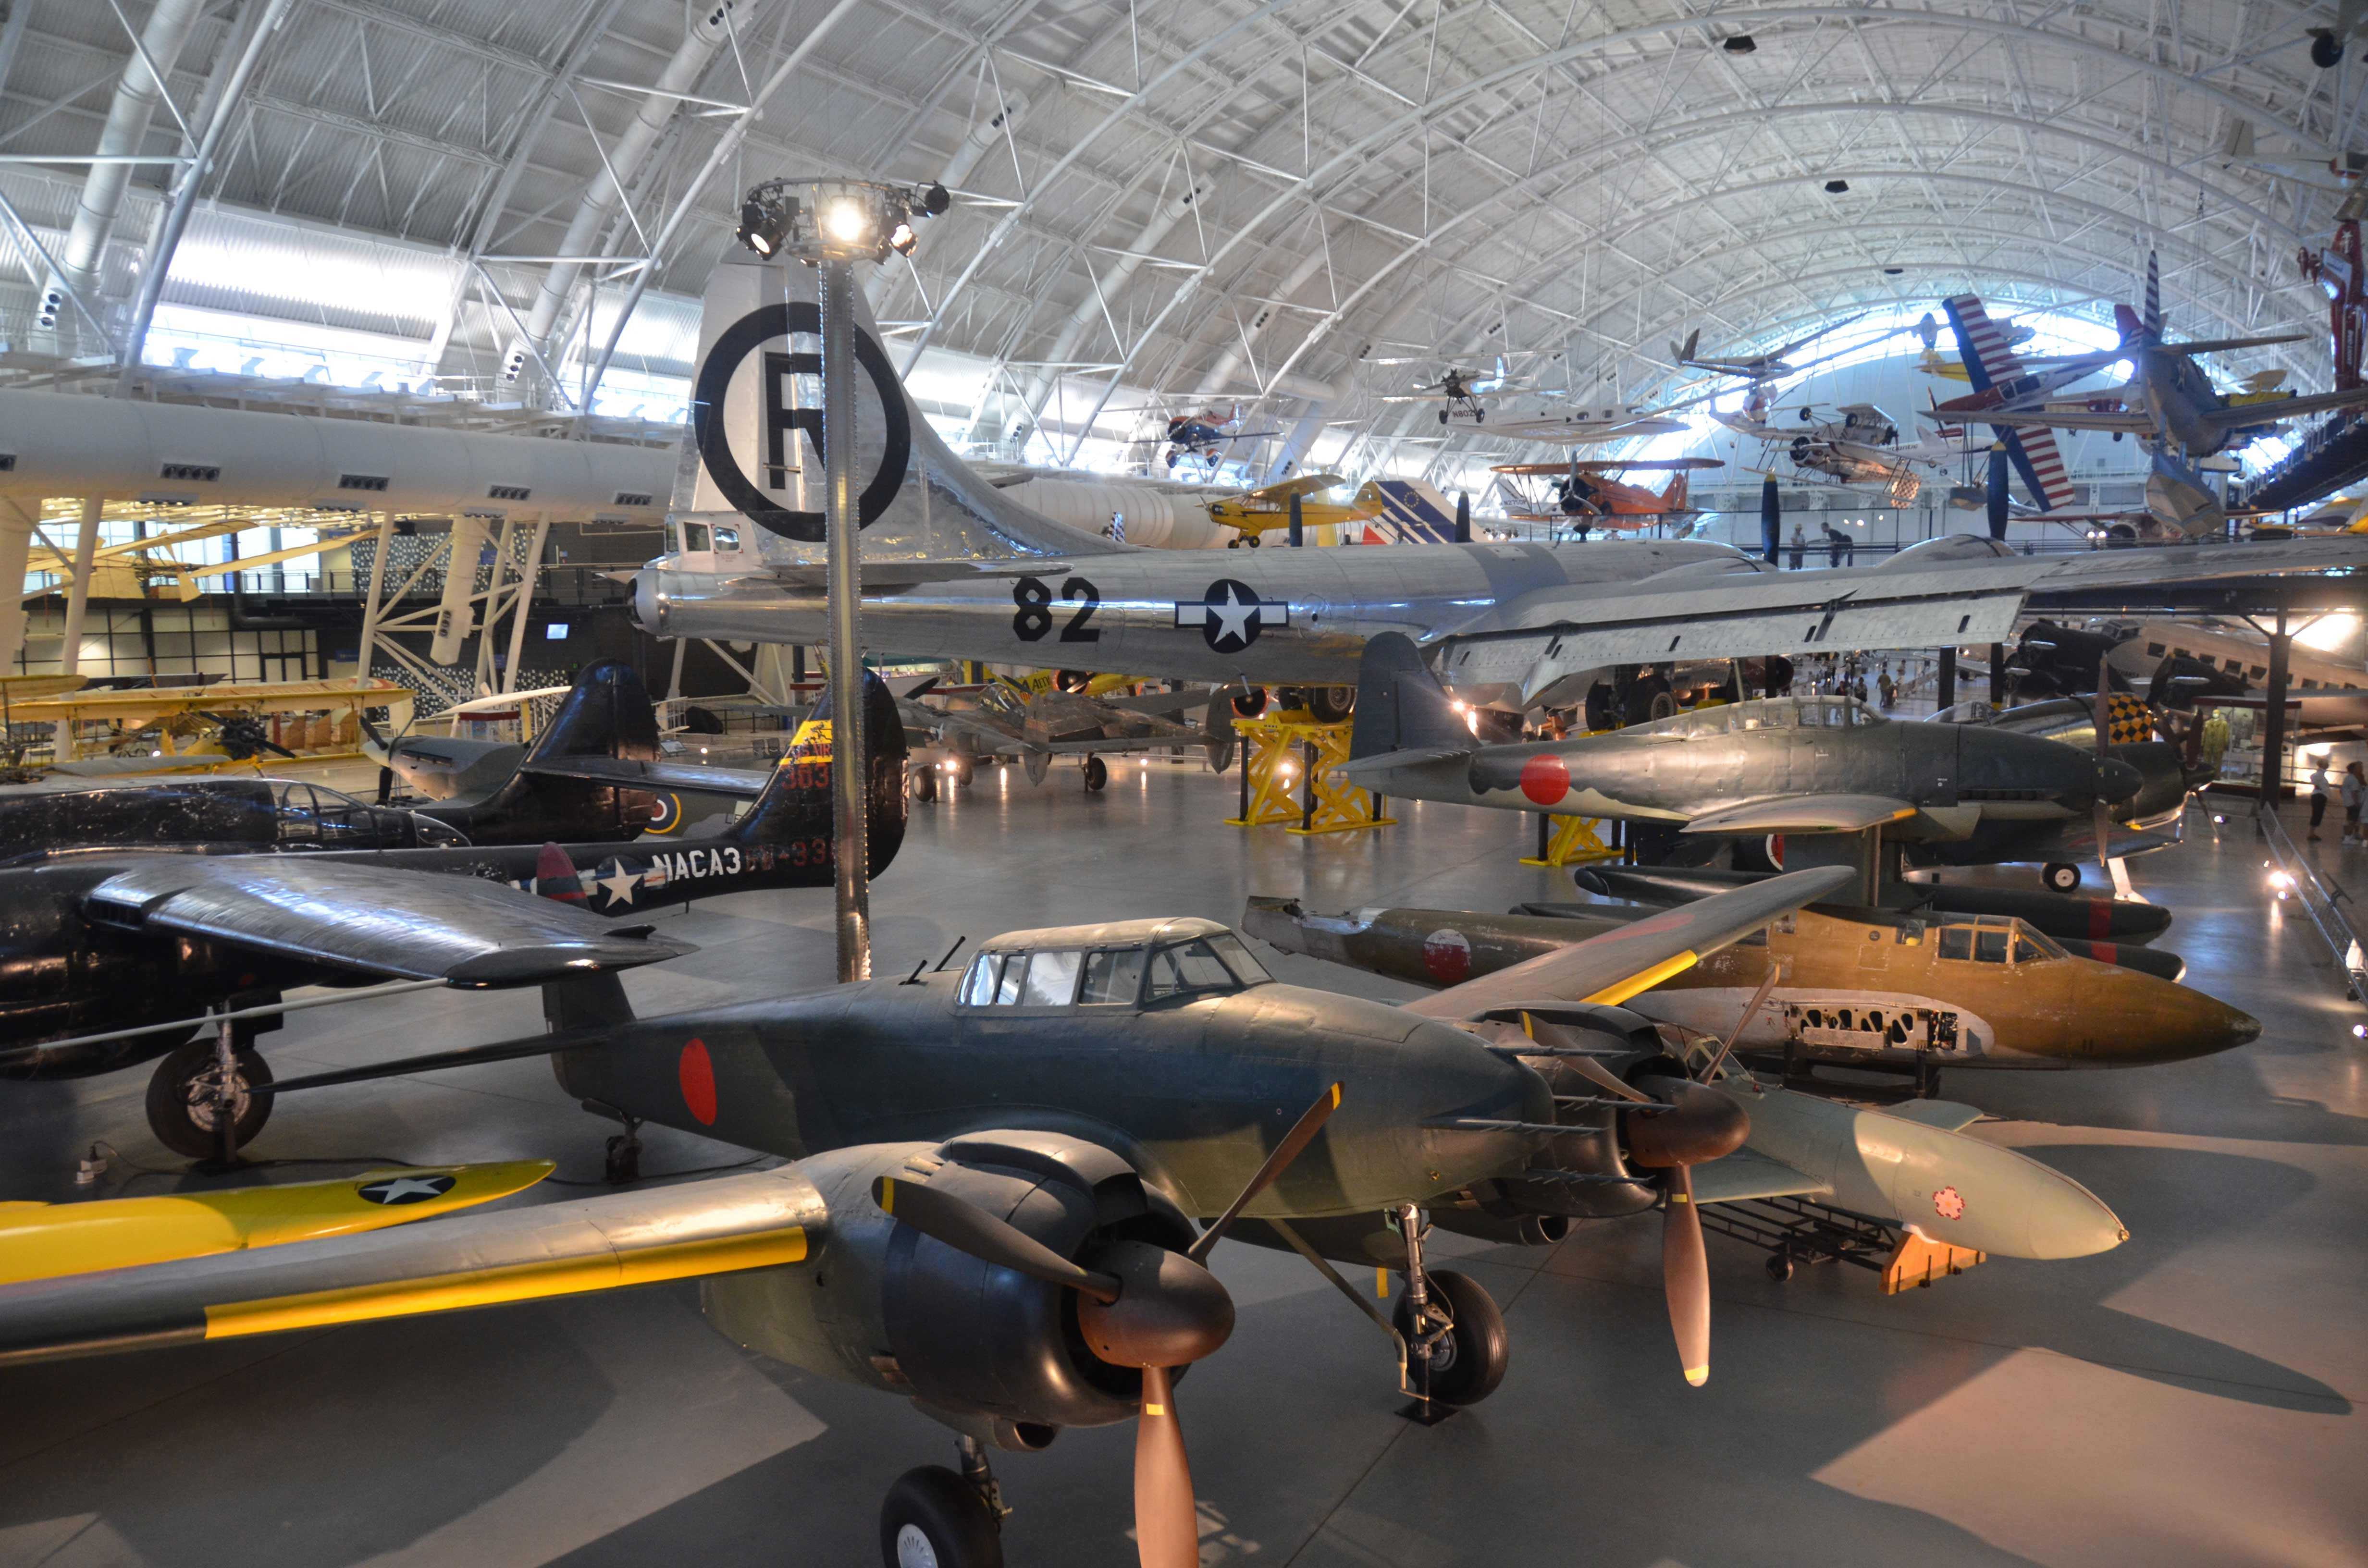 View of the Udvar-Hazy annex to the National Museum of Air and Space; a testament to humankind's aviation accomplishments.